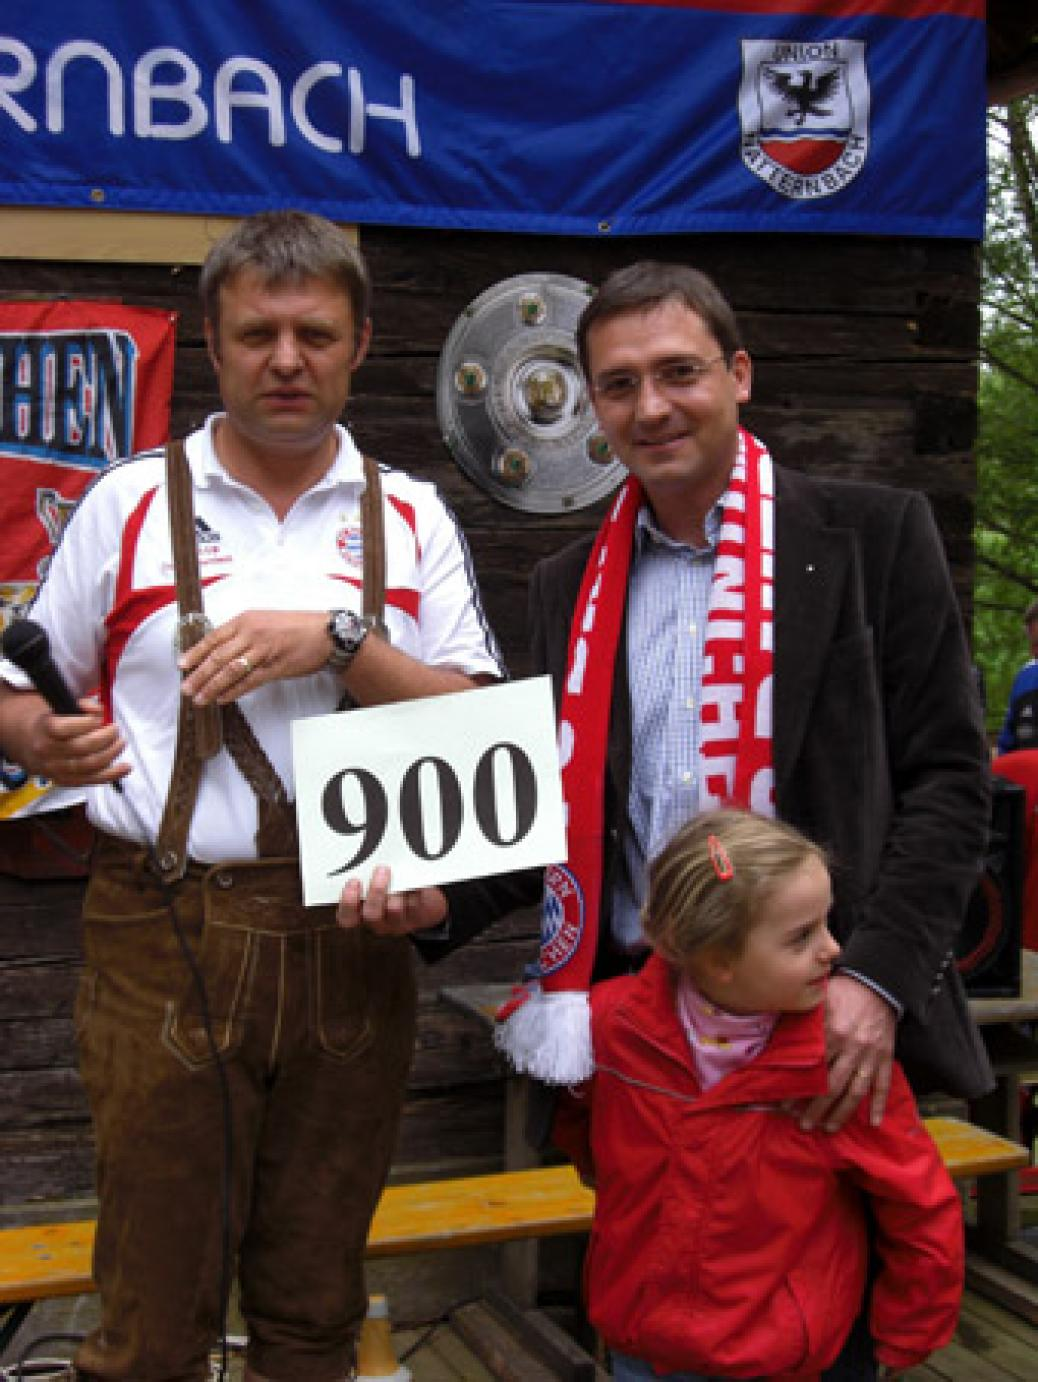 900. Mitglied unseres Fanclubs